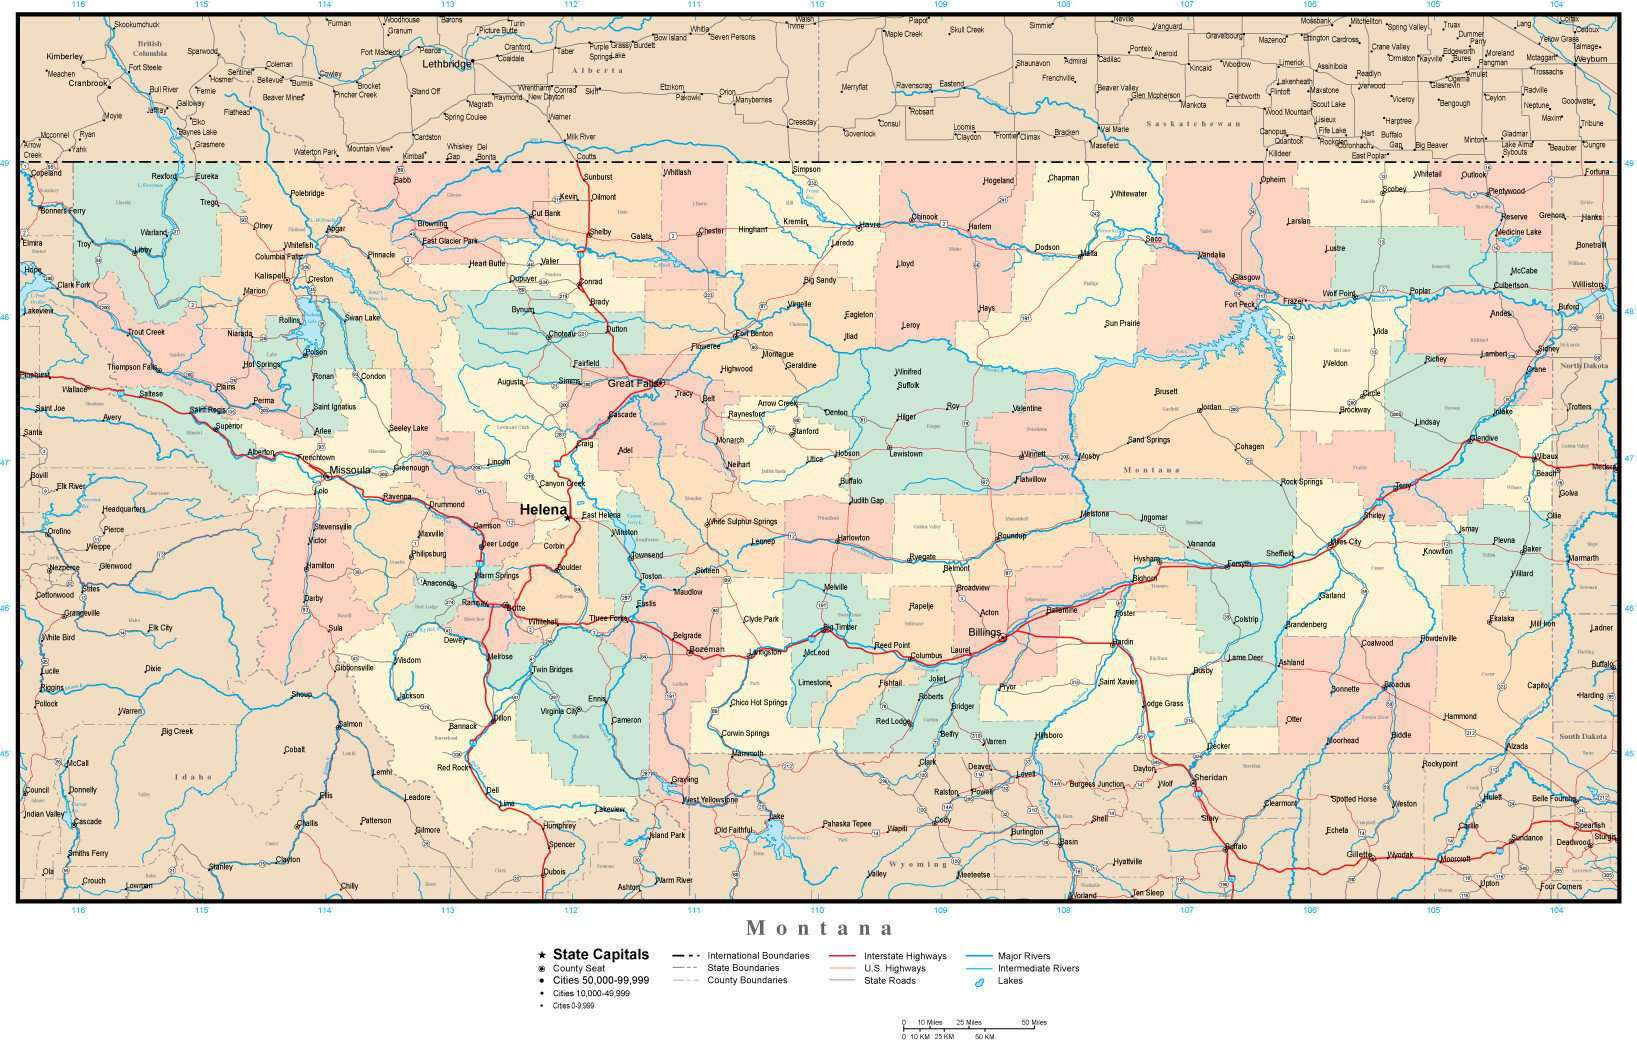 Montana Adobe Illustrator Map With Counties Cities County Seats